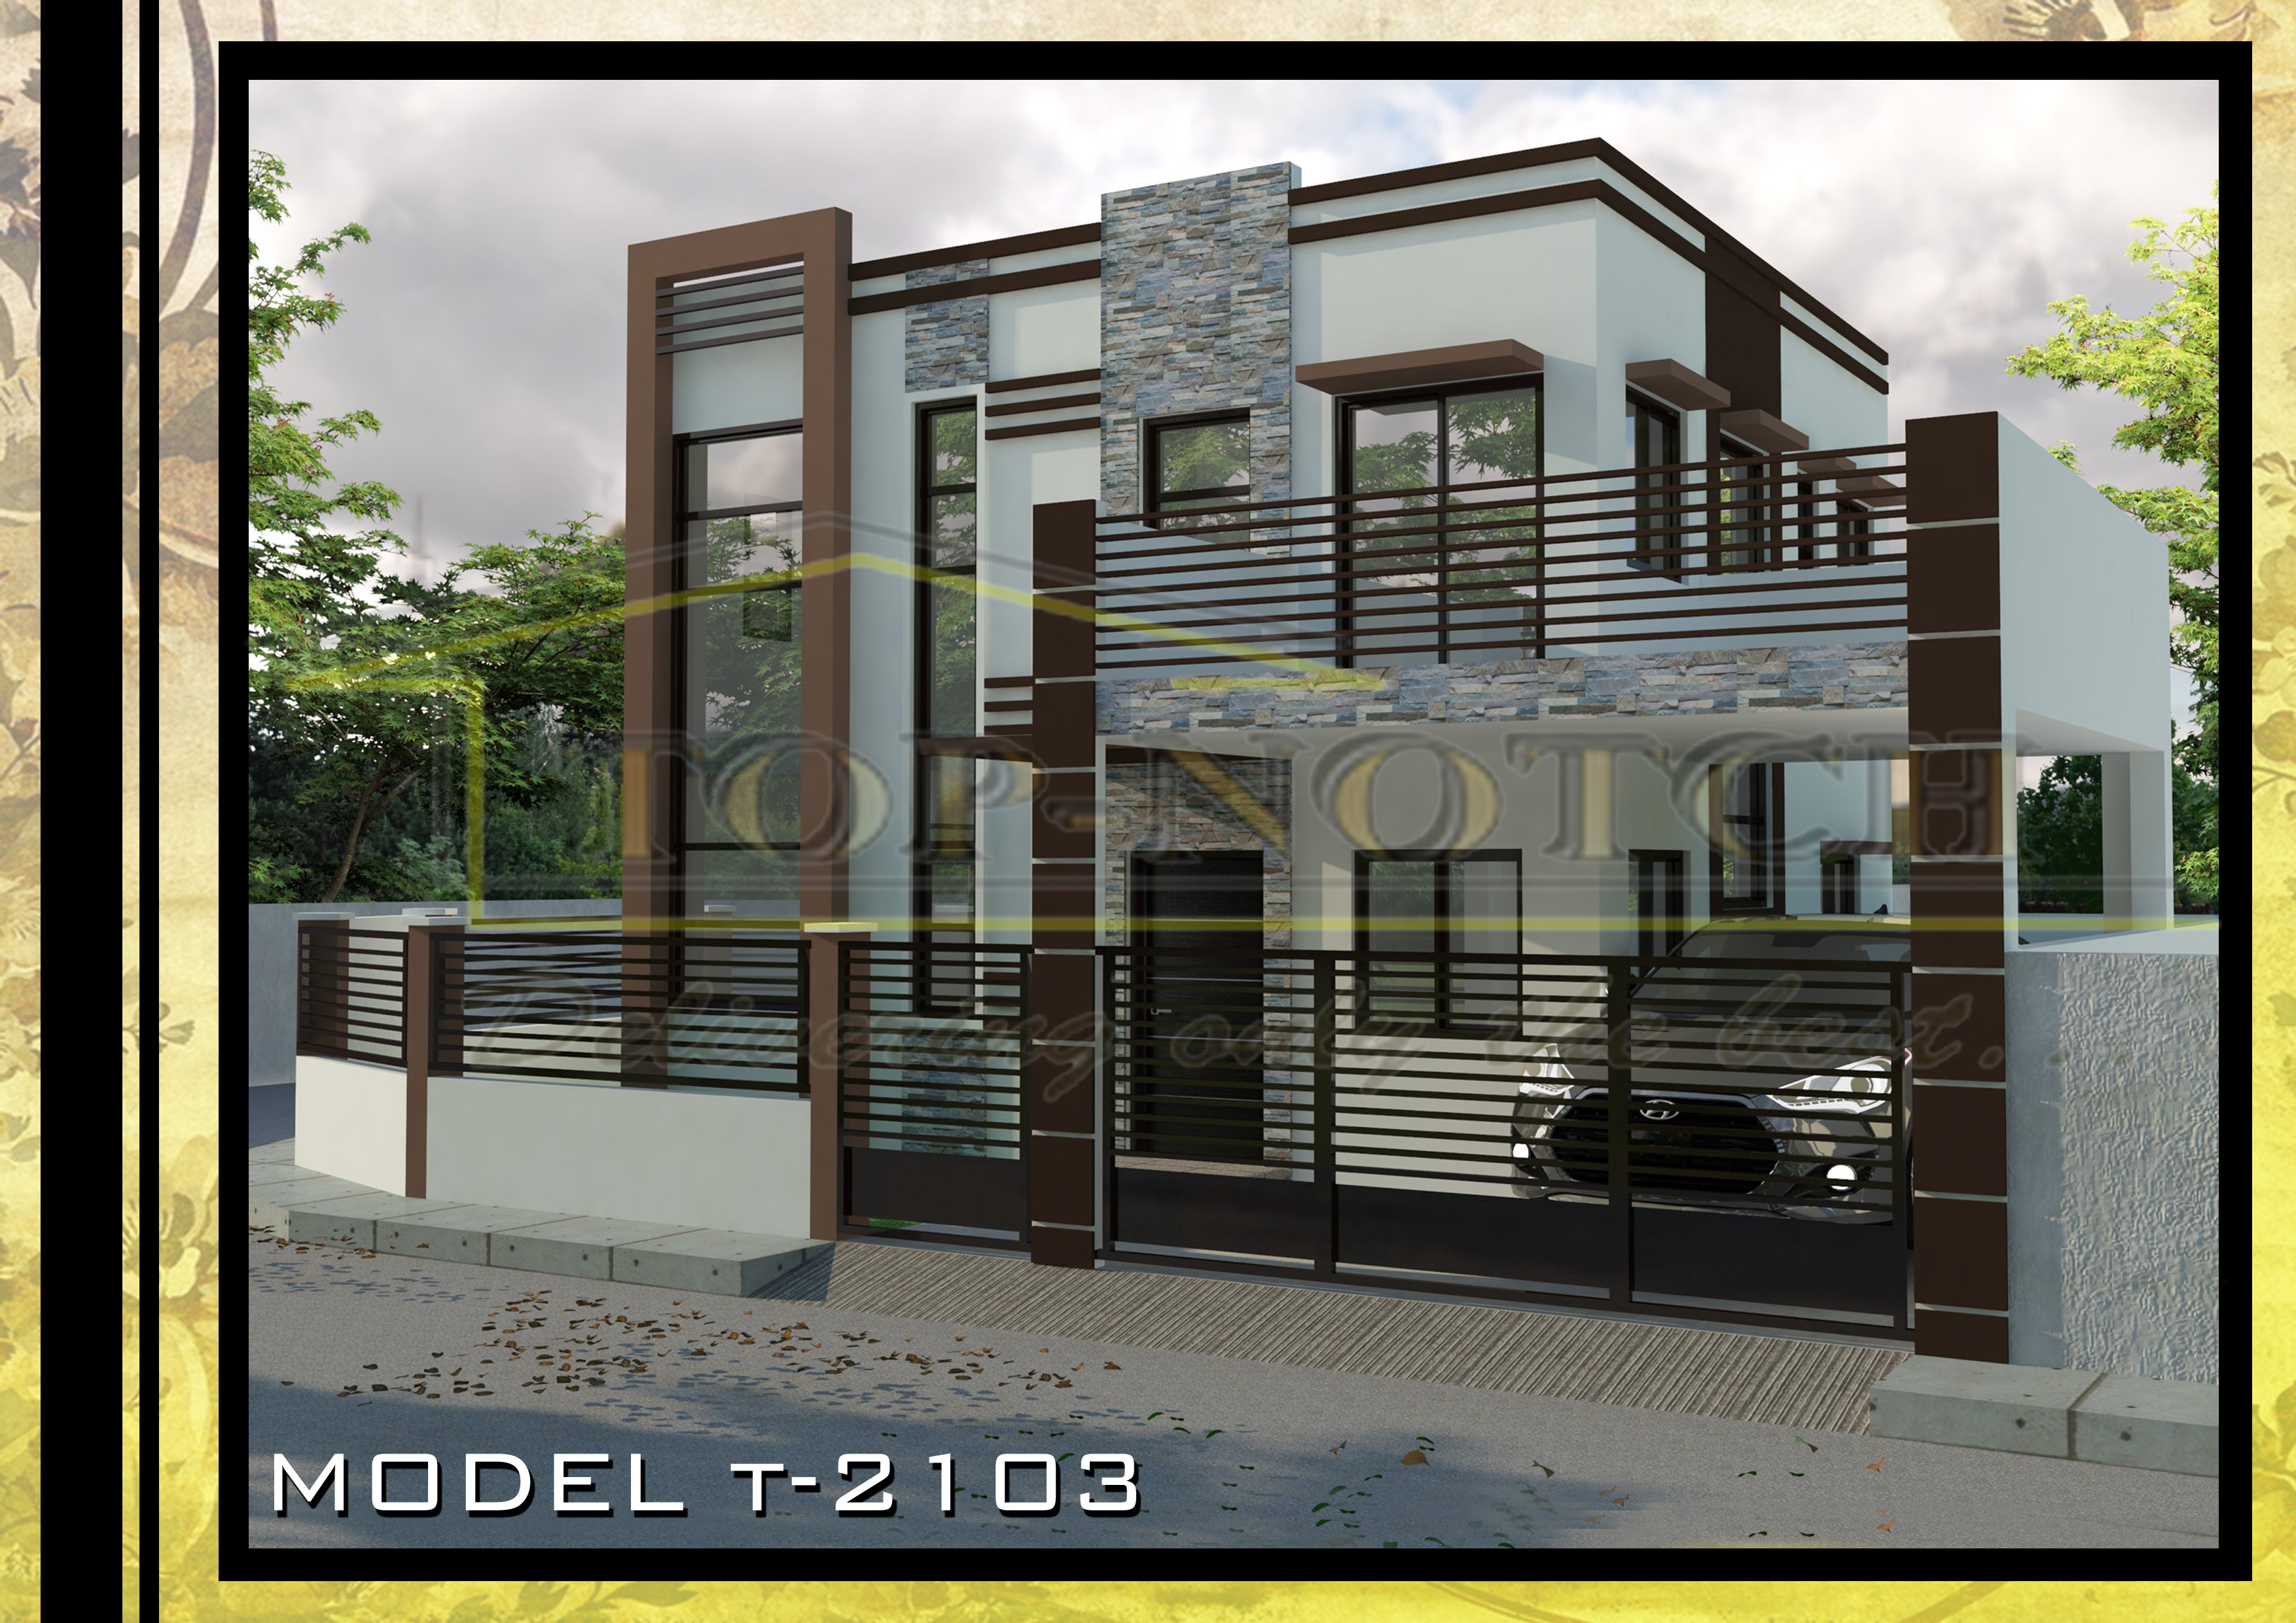 Building Contractors 93 sample projects in the Philippines